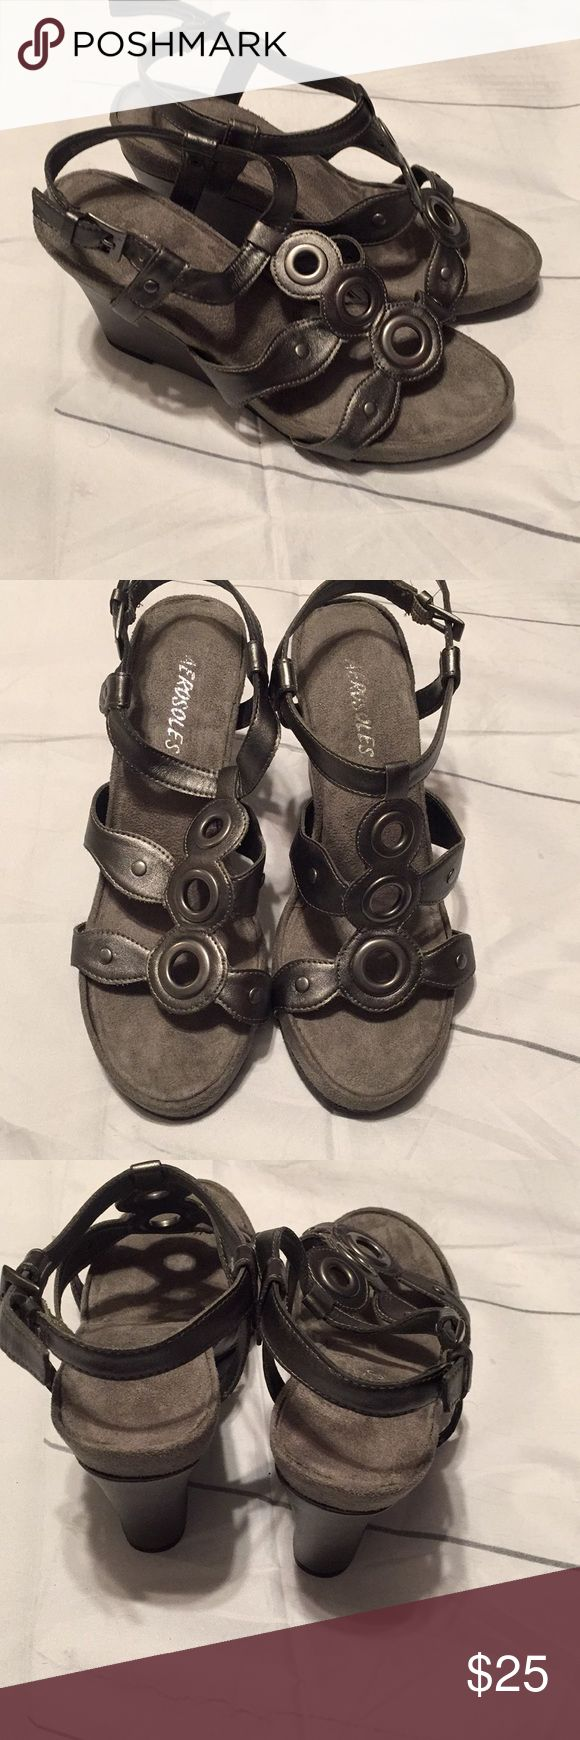 """Aerosoles gray wedges size 7 Aerosoles gray wedge sandals size 7 in good condition. 3"""" heel. Comes from smoke free and pet free home. AEROSOLES Shoes Wedges"""